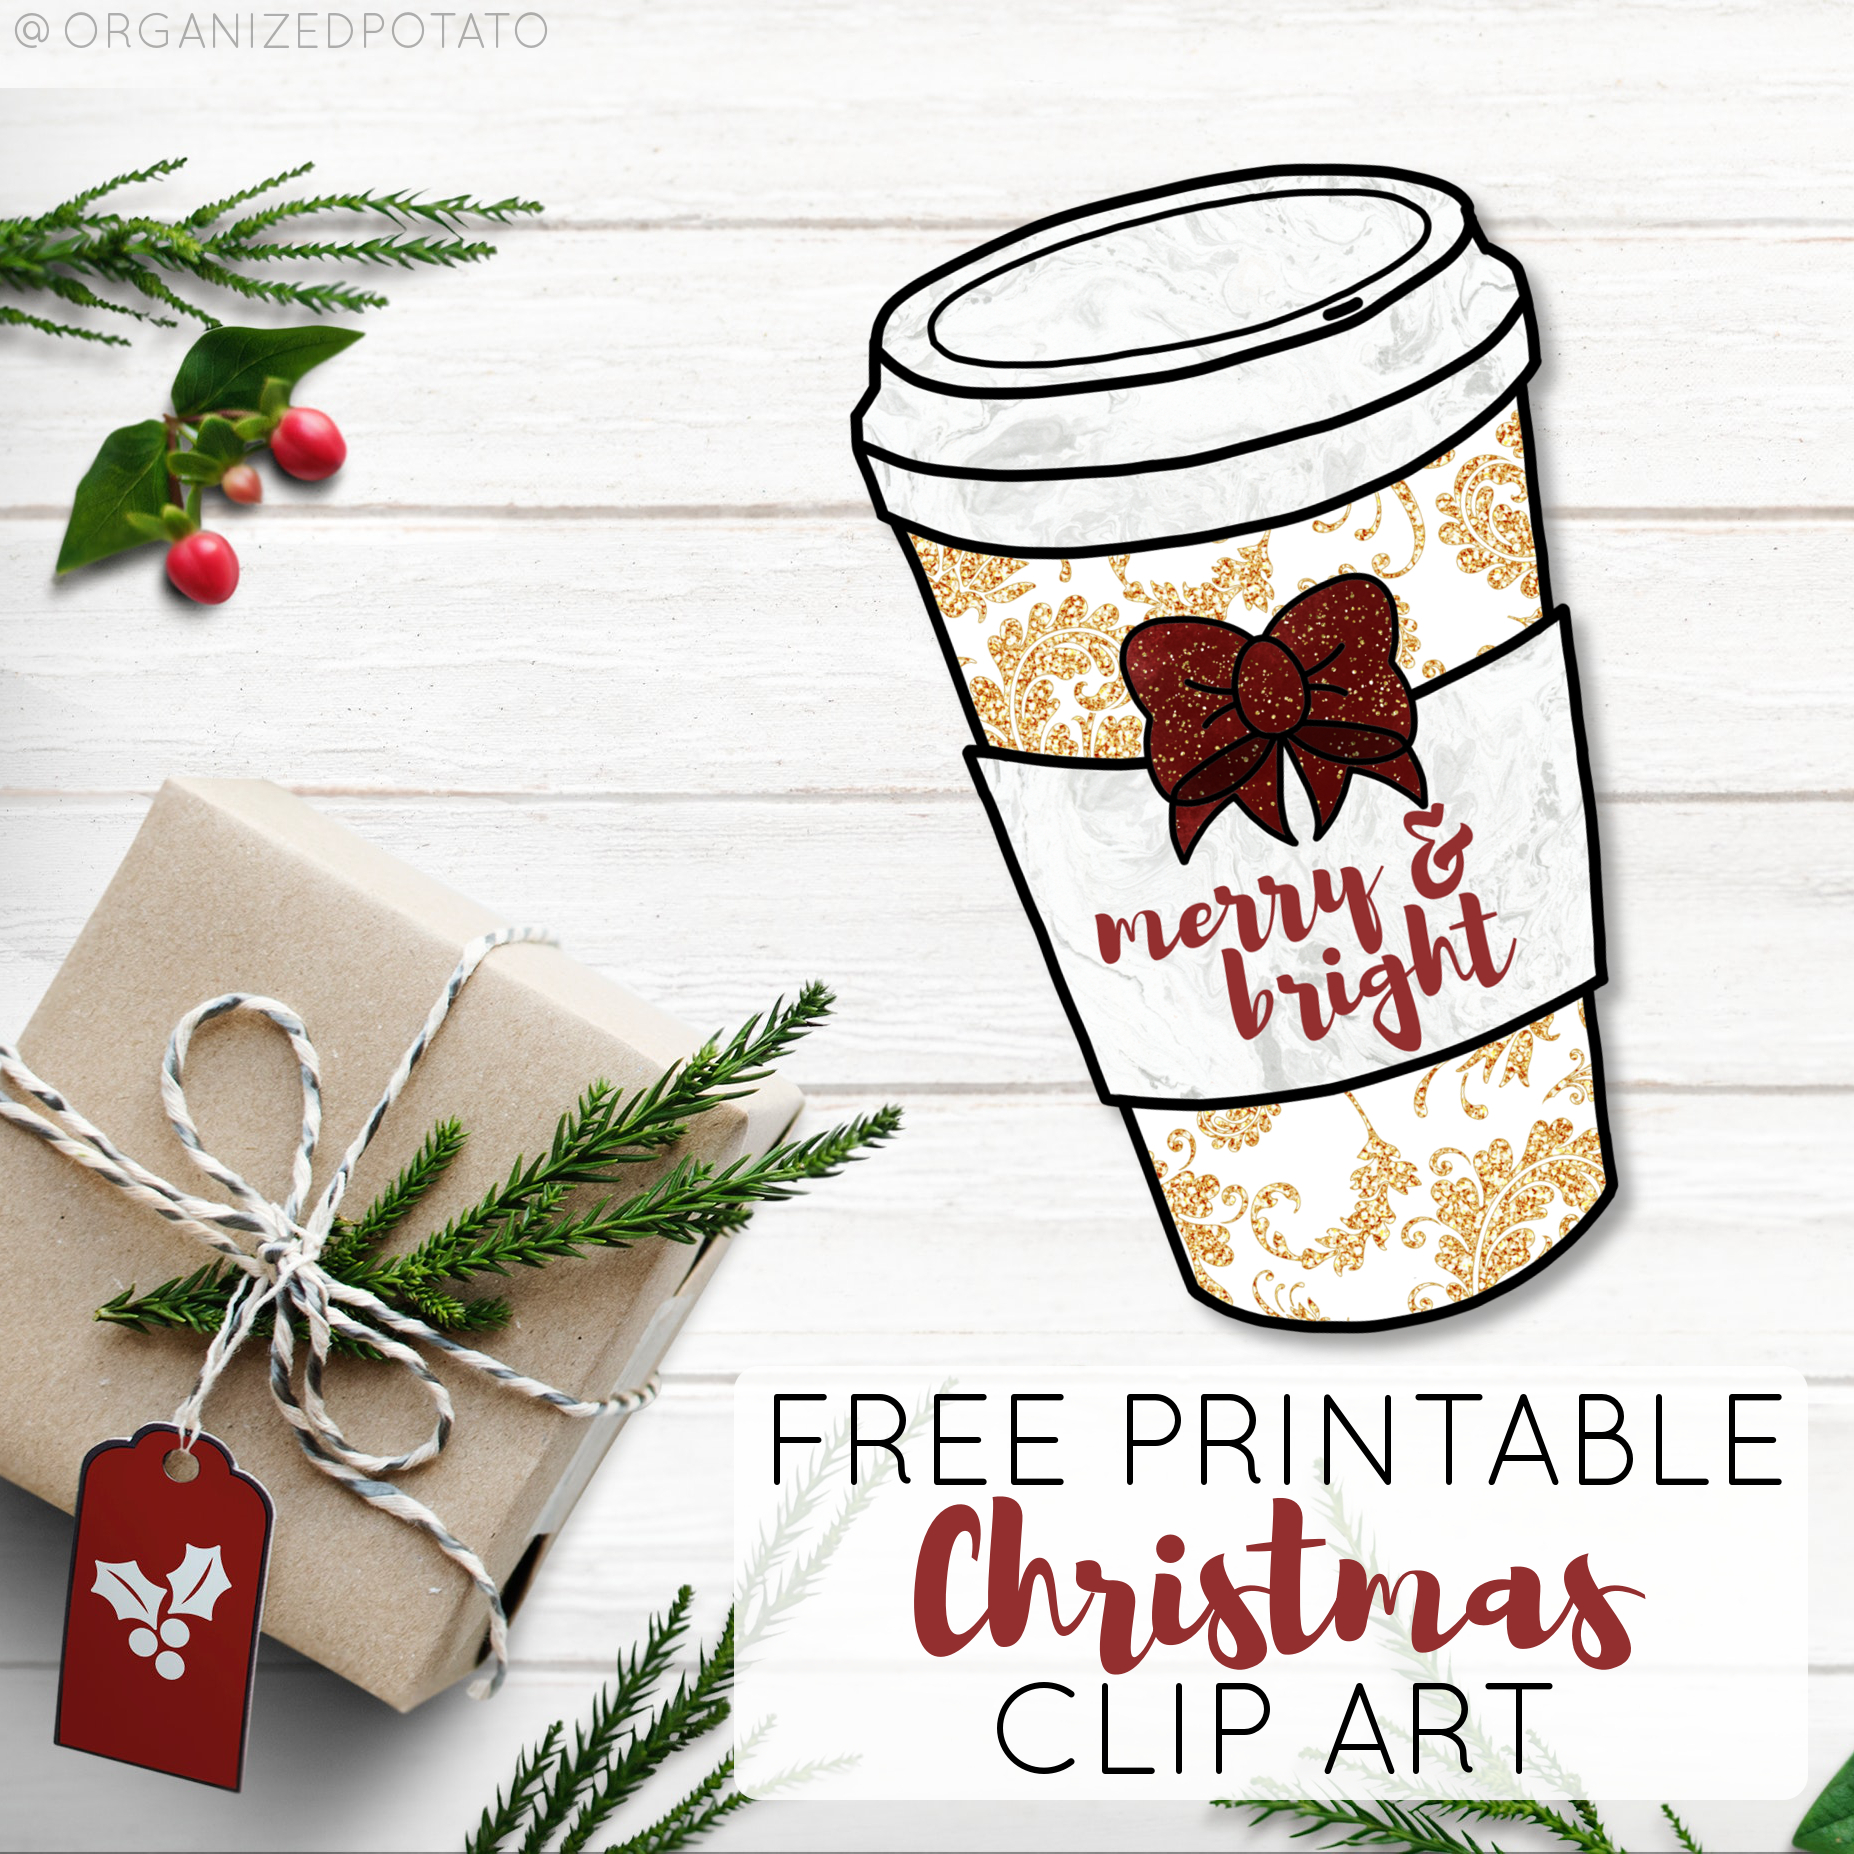 photograph regarding Free Printable Christmas Clip Art titled Merry and Dazzling Espresso Cup Clip Artwork and Do-it-yourself Wall Artwork